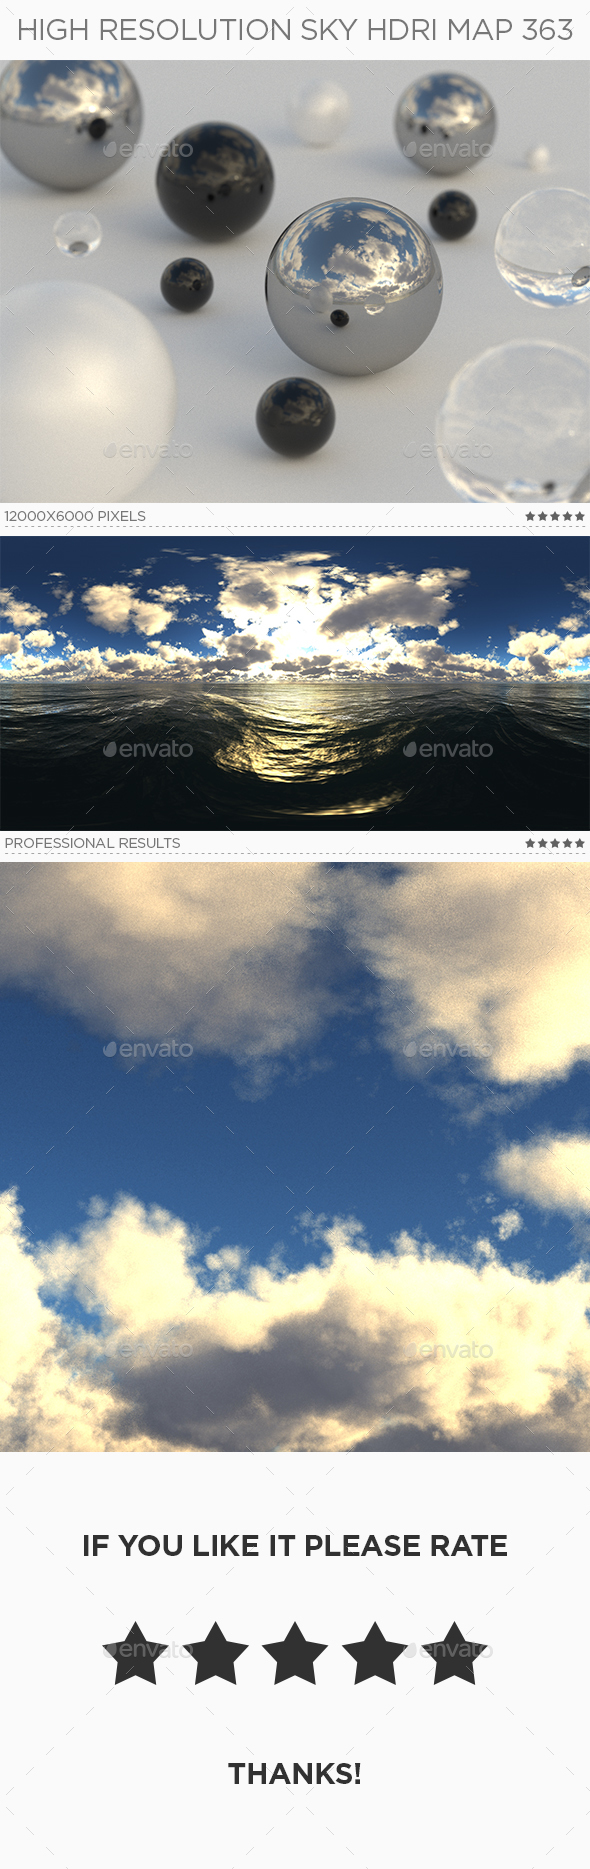 High Resolution Sky HDRi Map 363 - 3DOcean Item for Sale